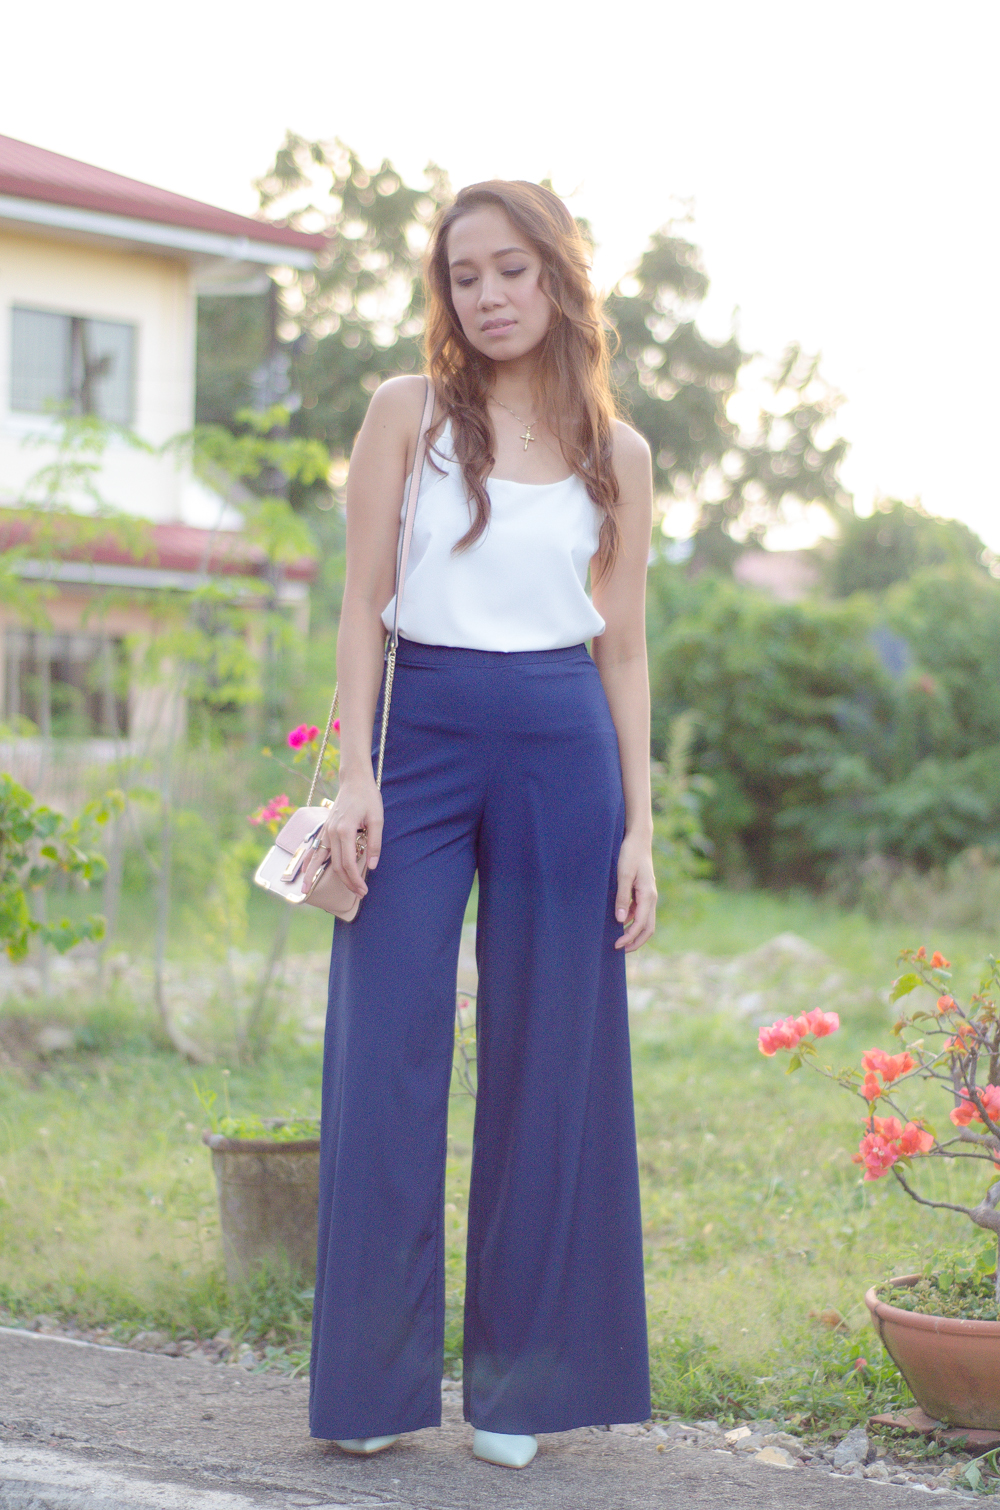 cebu fashion blogger. cebu blogger. cebu lifestyle blogger. outfit. palazzo pants. special occasions outfit. wide leg pants. trousers. toni pino-oca.